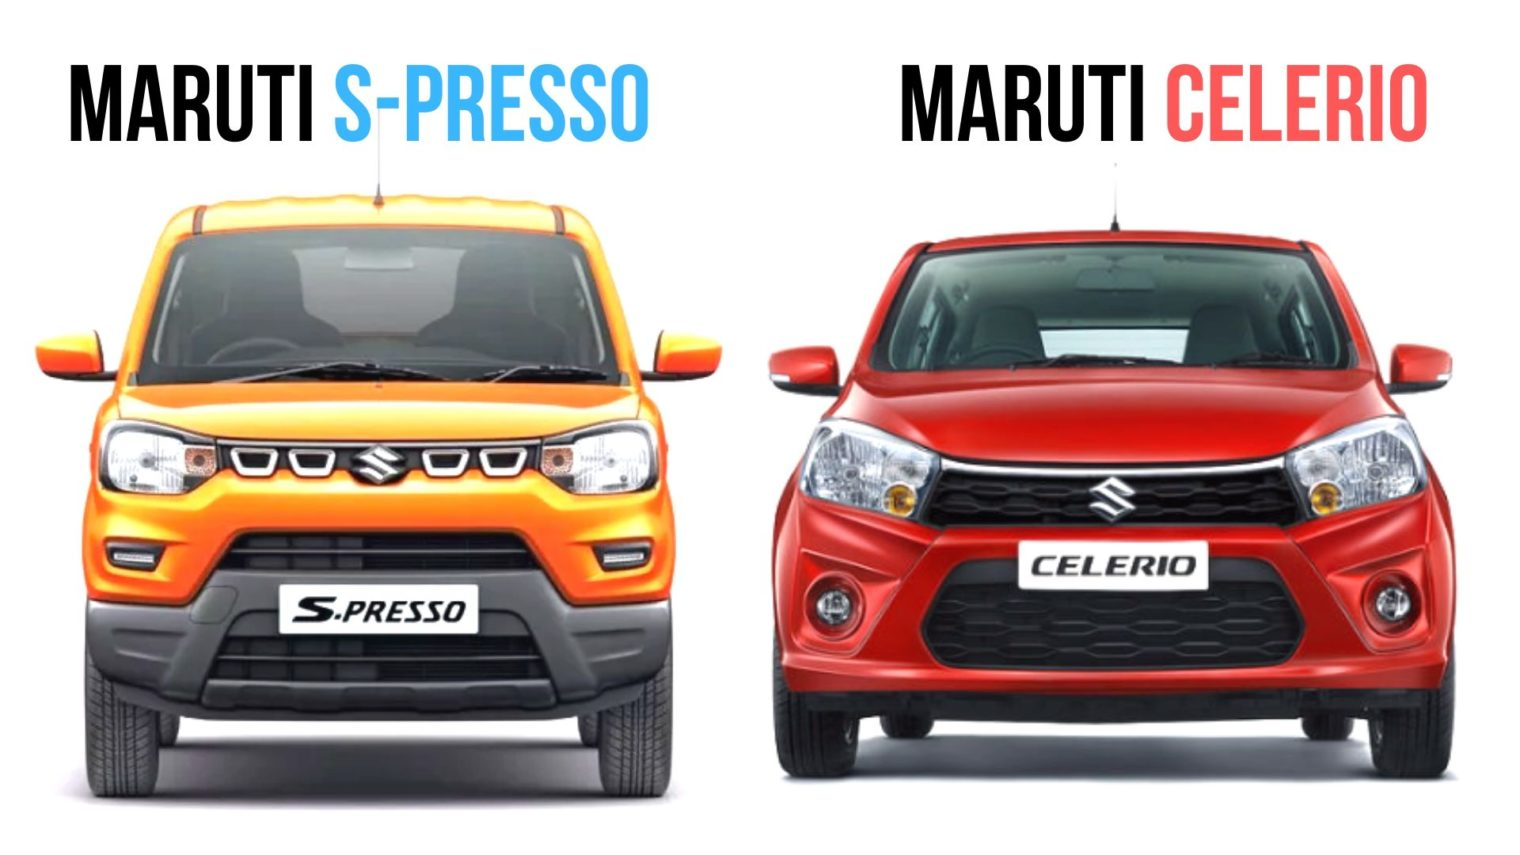 Maruti Celerio Sales Down By 30% In 2019, New S-Presso Effect?